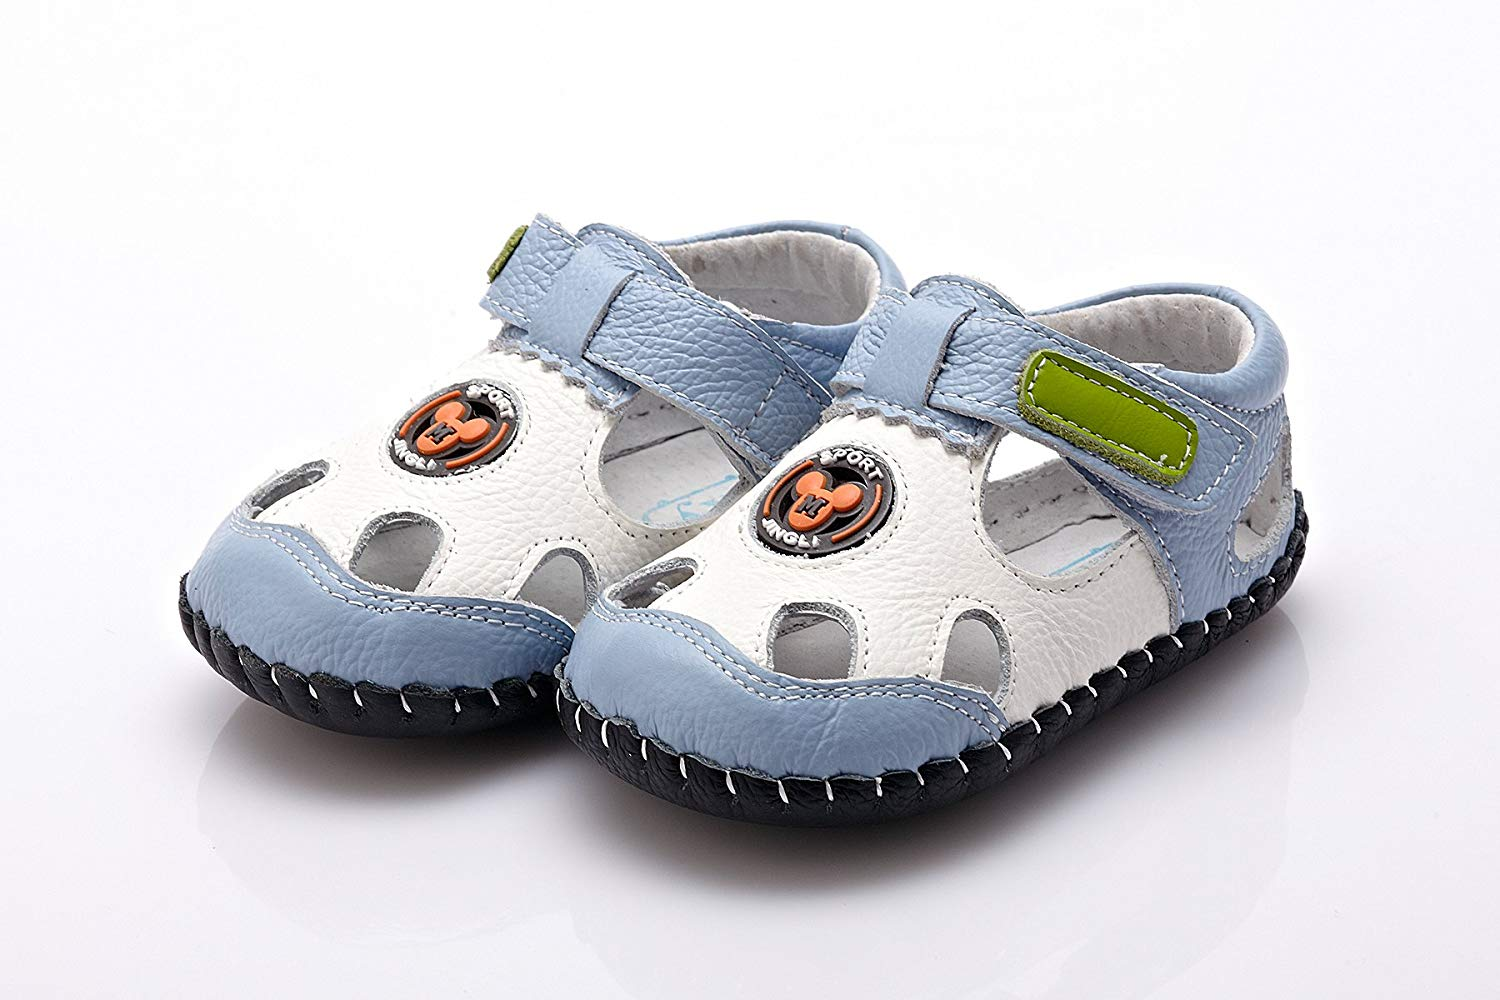 e26b669706491 YXY Baby Boys Girls Leather Shoes Summer Beautiful Soft Leather Baby Shoes  with Suede Soles –